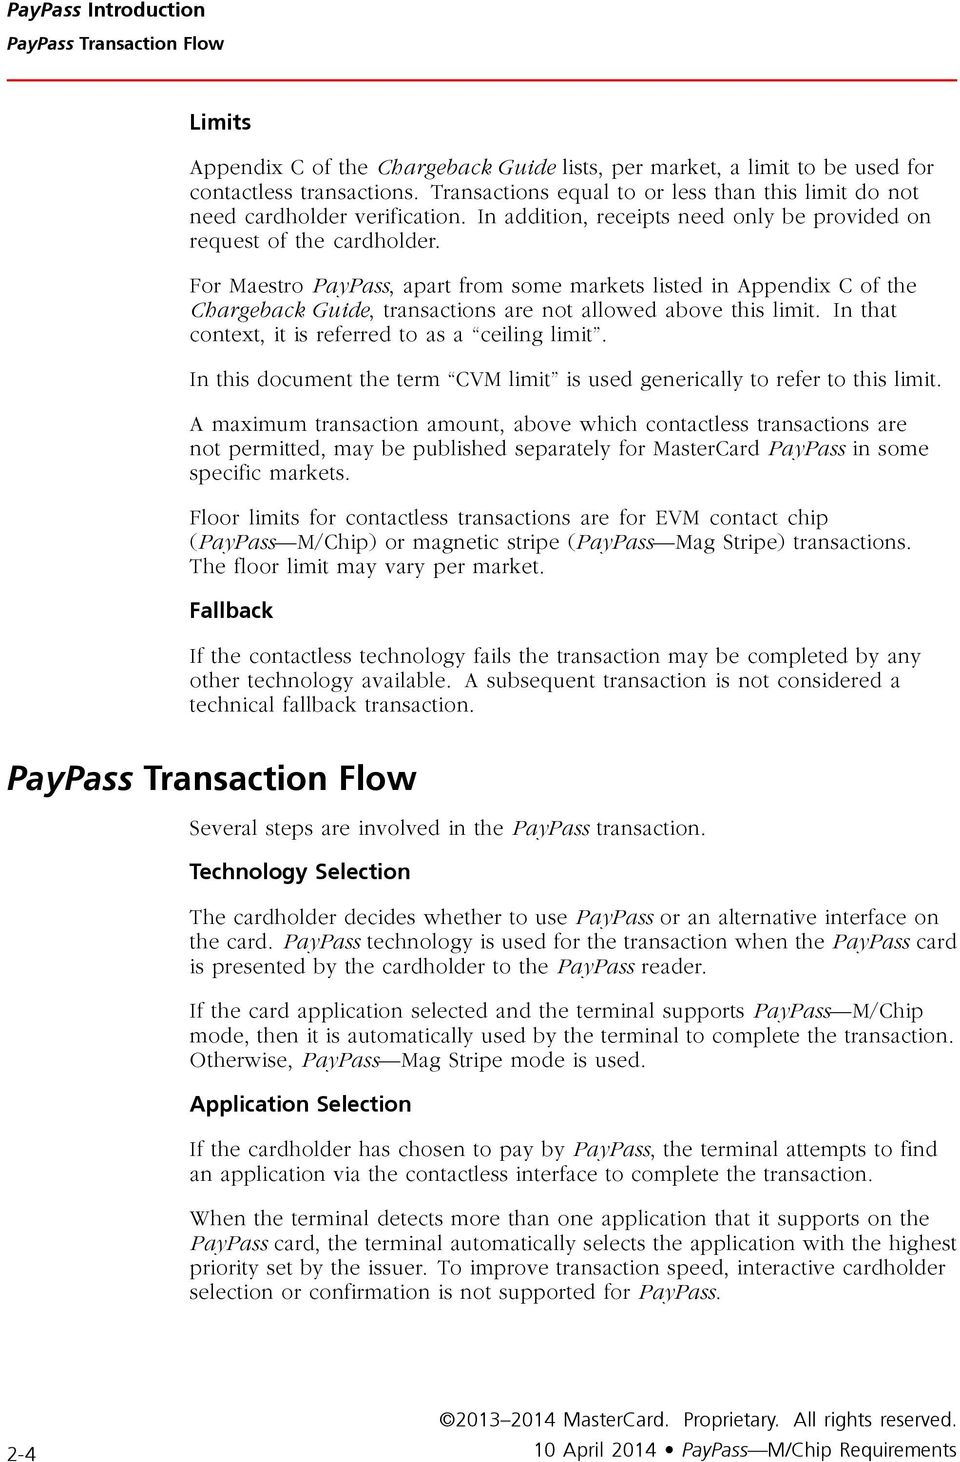 For Maestro PayPass, apart from some markets listed in Appendix C of the Chargeback Guide, transactions are not allowed above this limit. In that context, it is referred to as a ceiling limit.